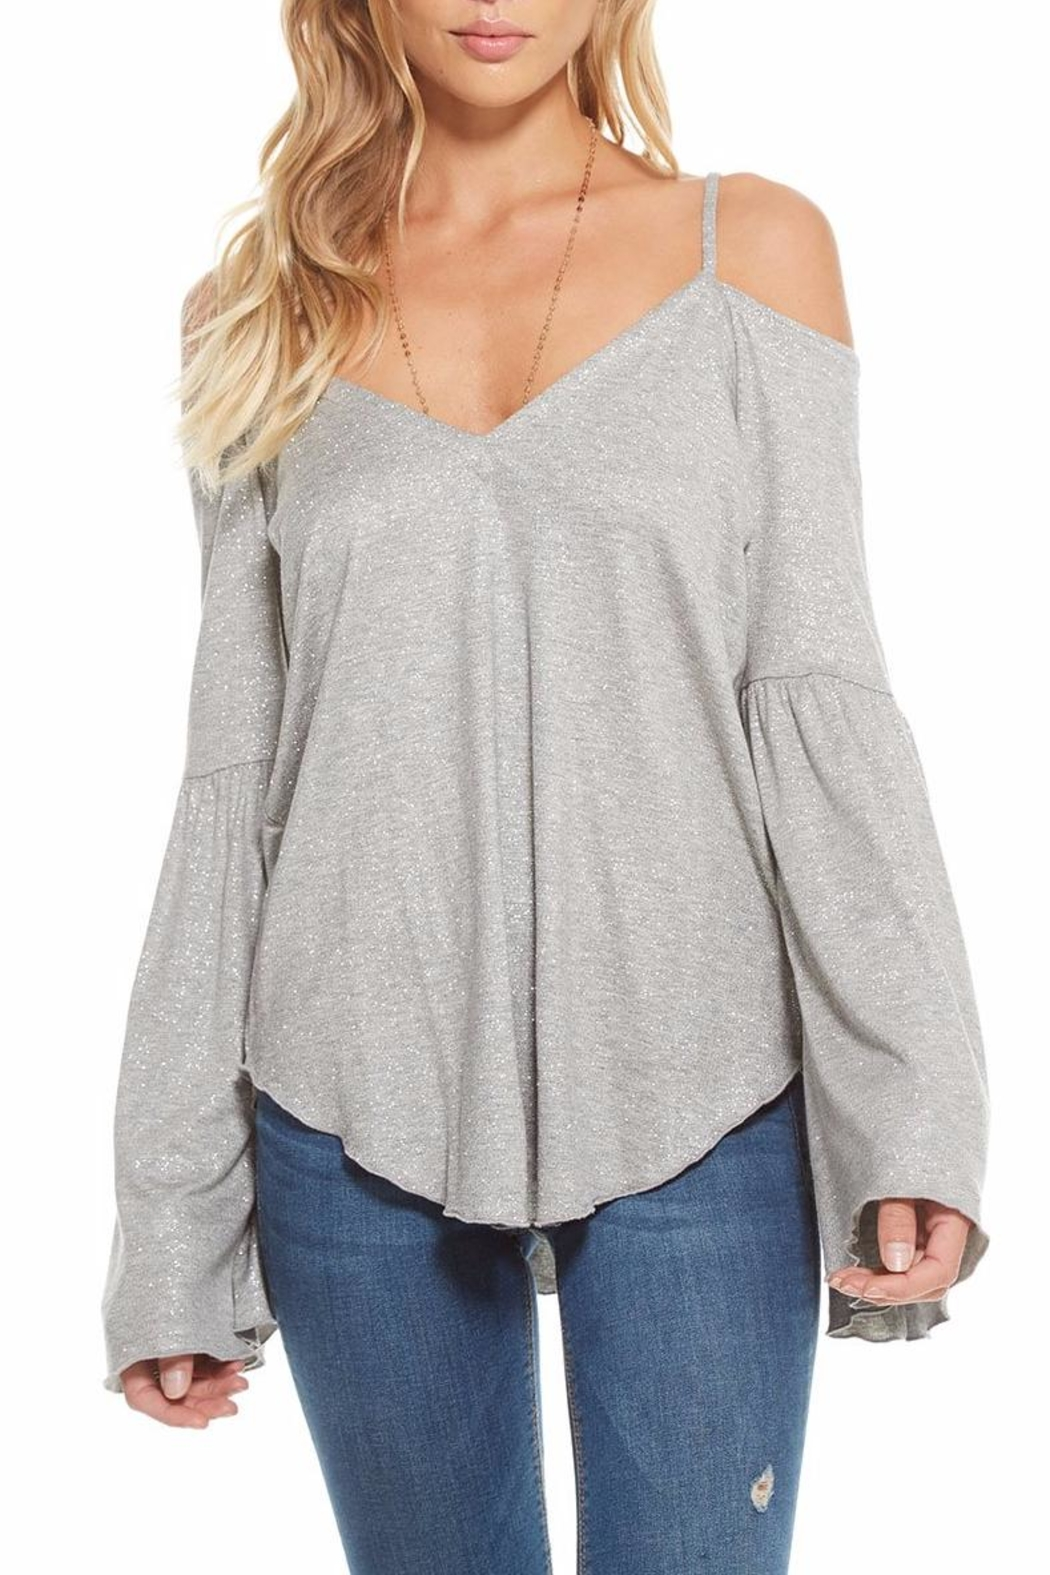 Chaser Glitter Strappy Flounce-Sleeve - Main Image